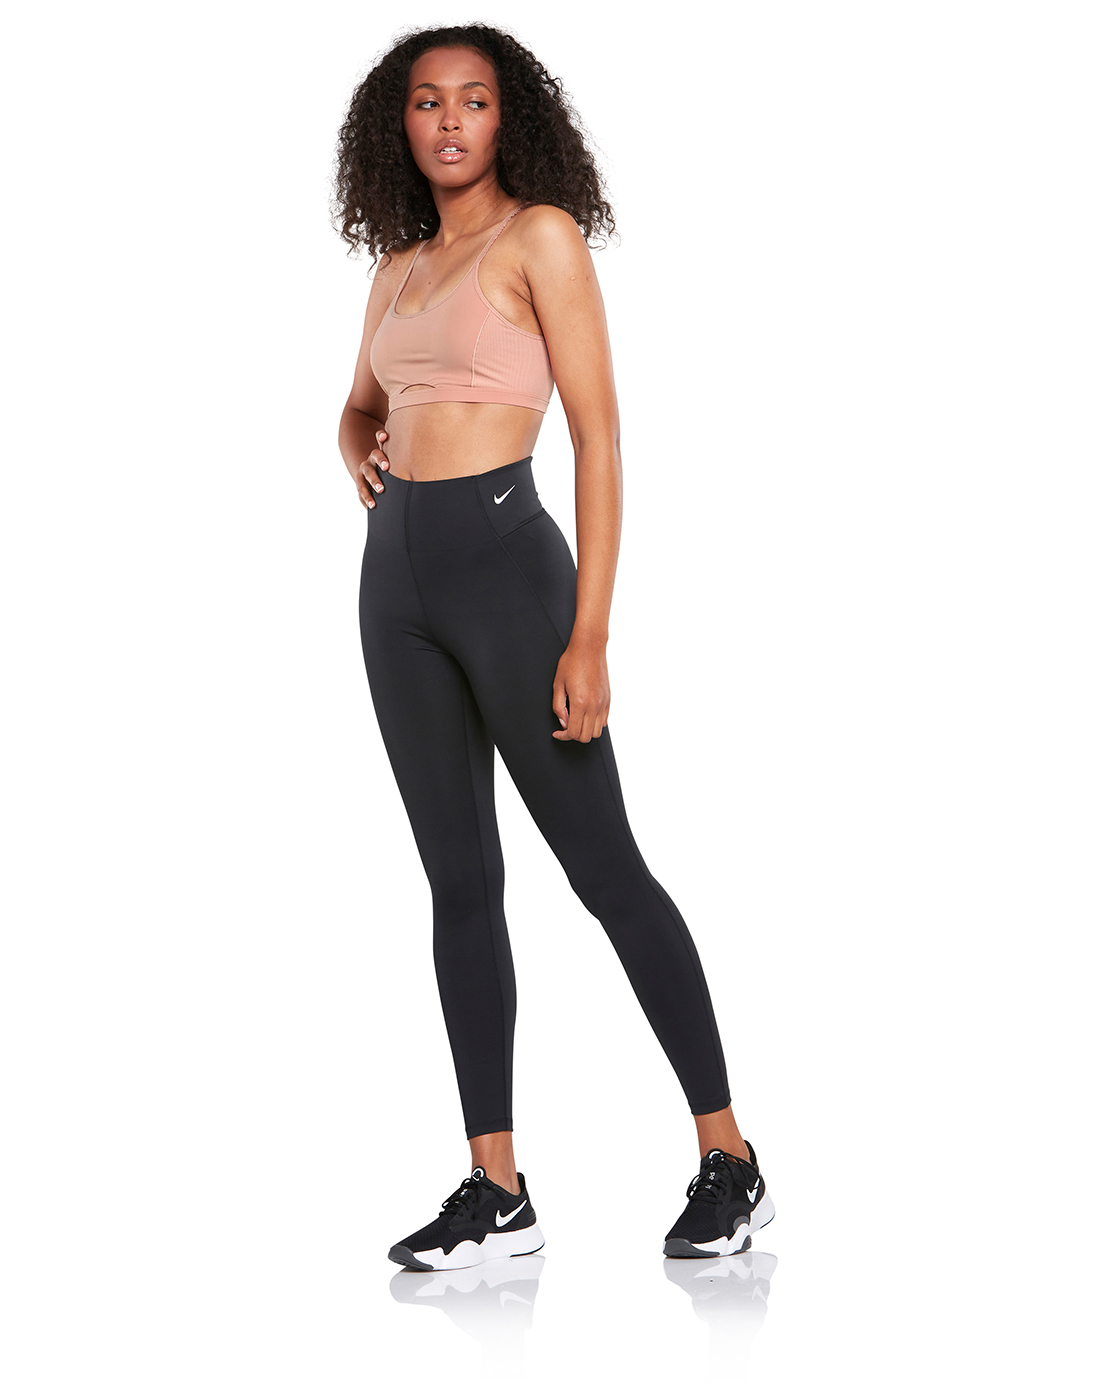 8901709c09203c Women's Black Nike Sculpt Victory Tights   Life Style Sports